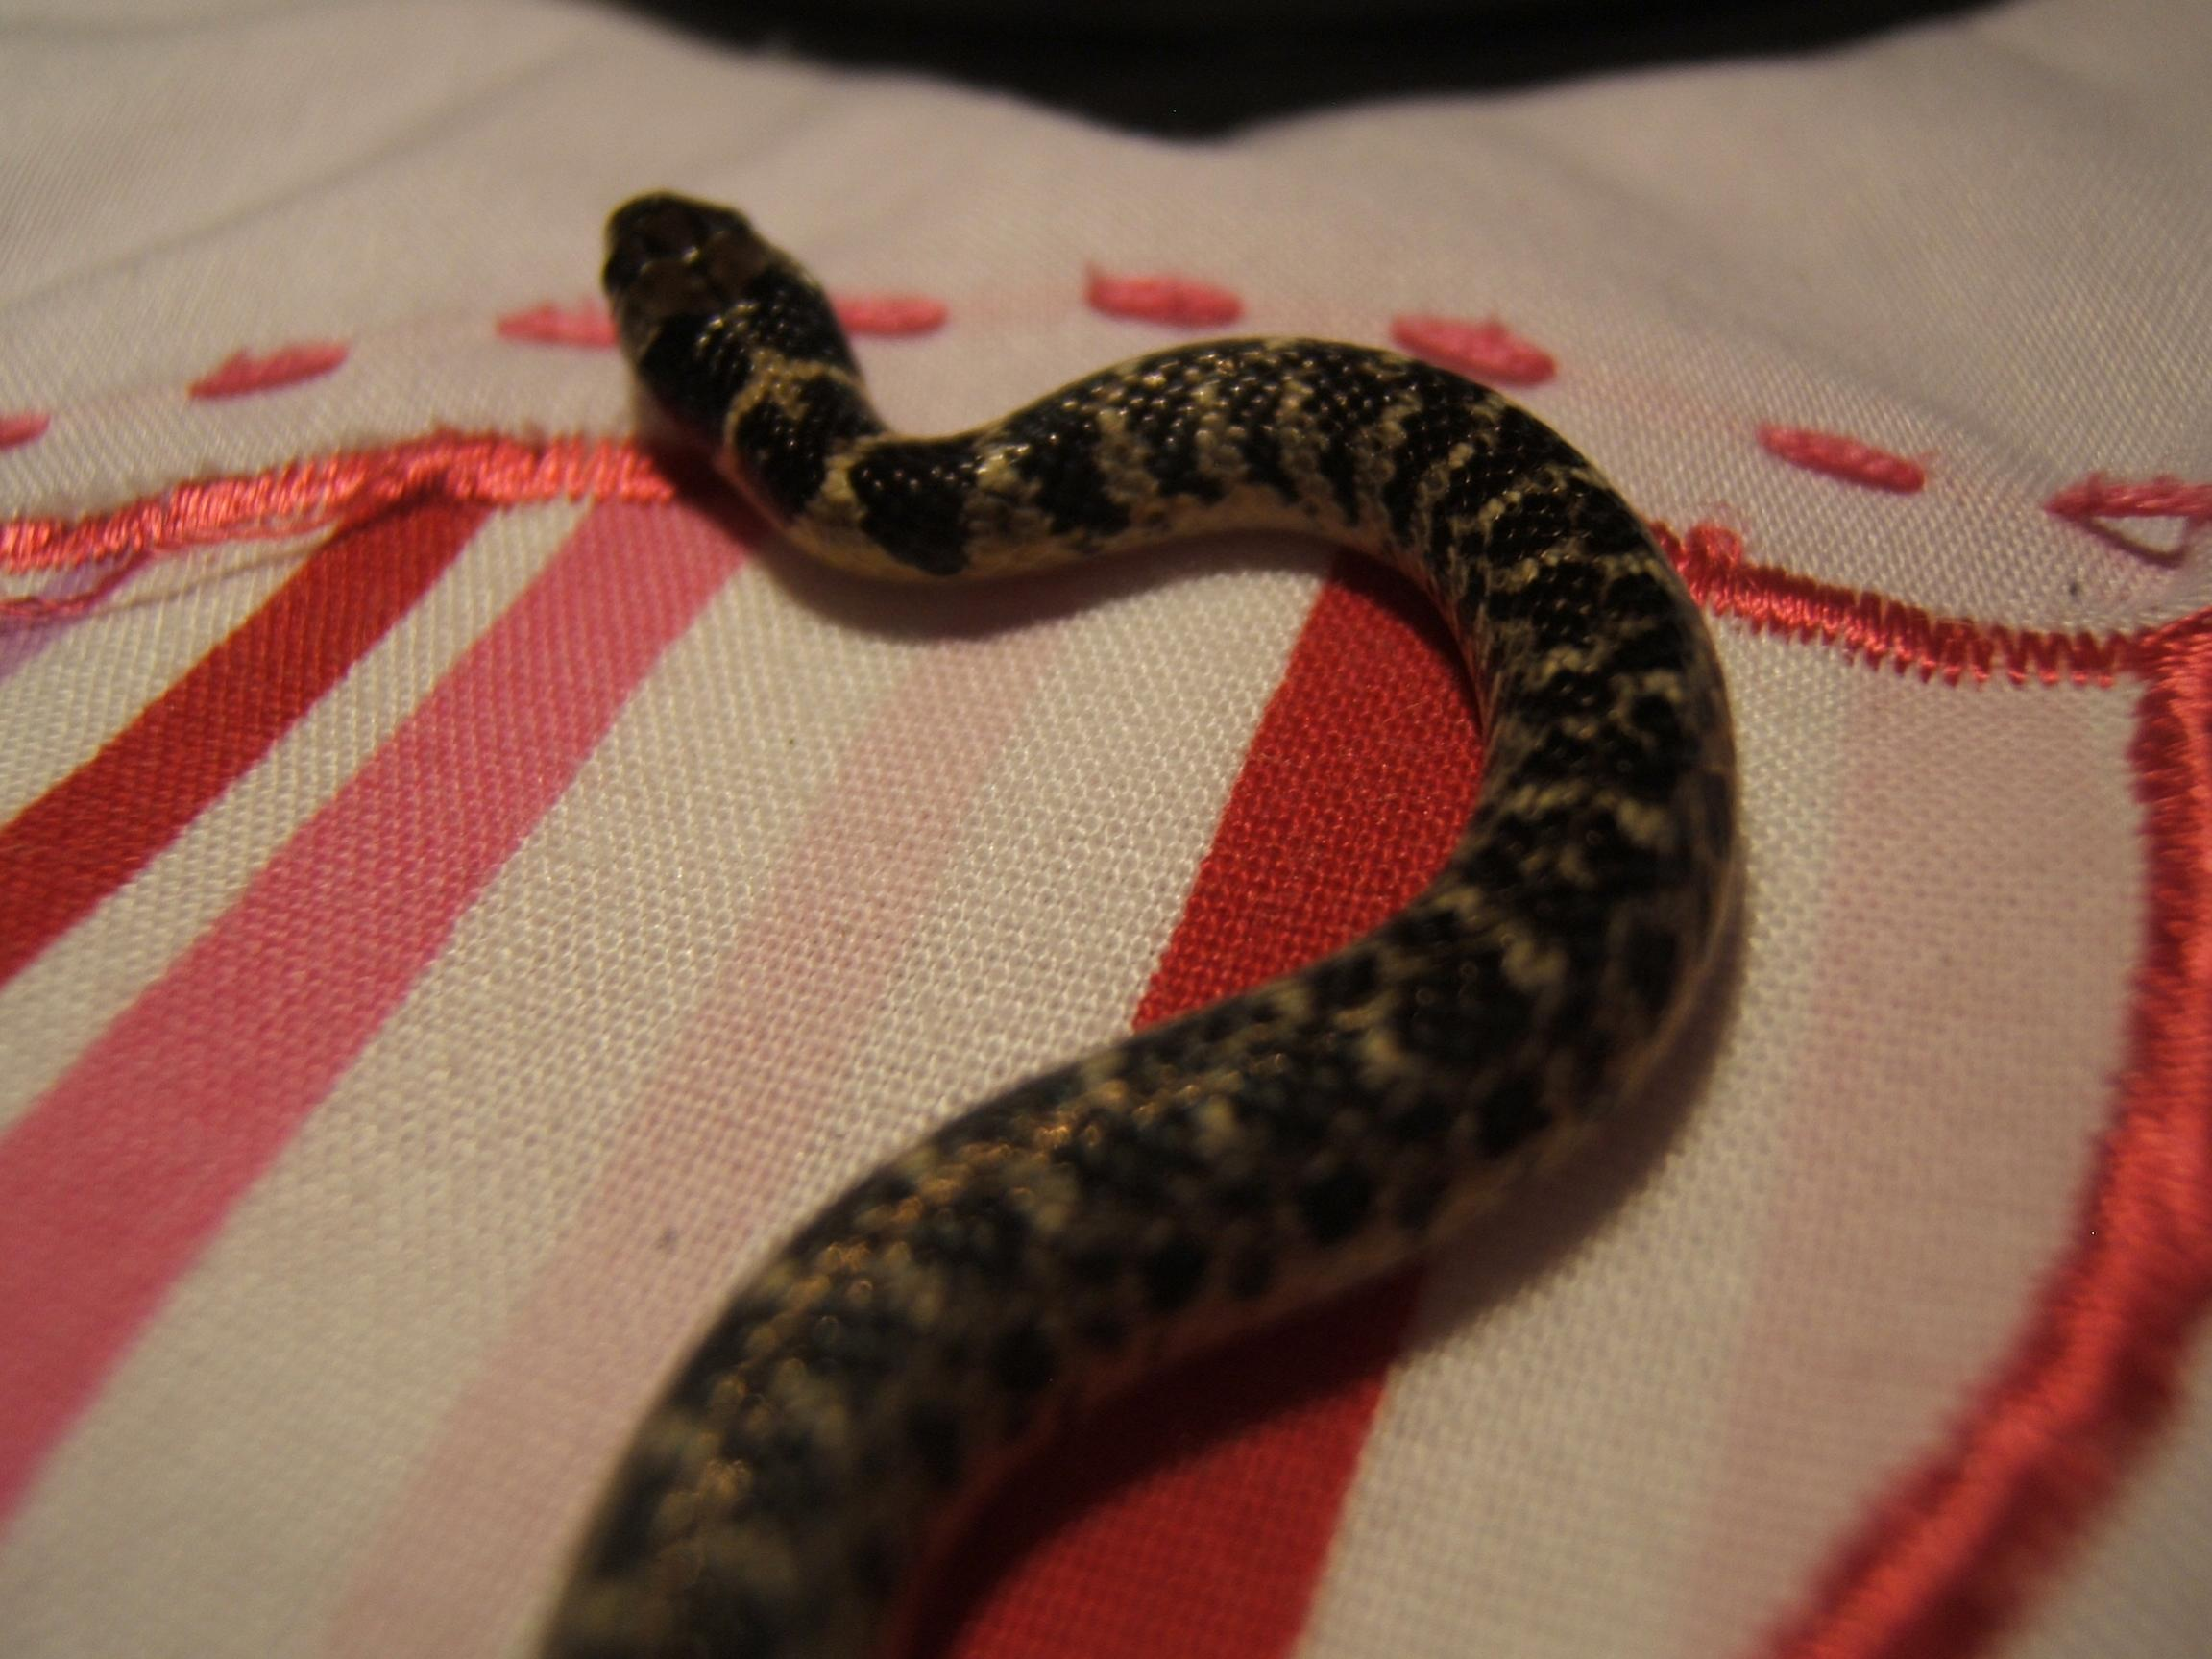 Red Bellied Water Snake Gold Bellied Water Snakes For